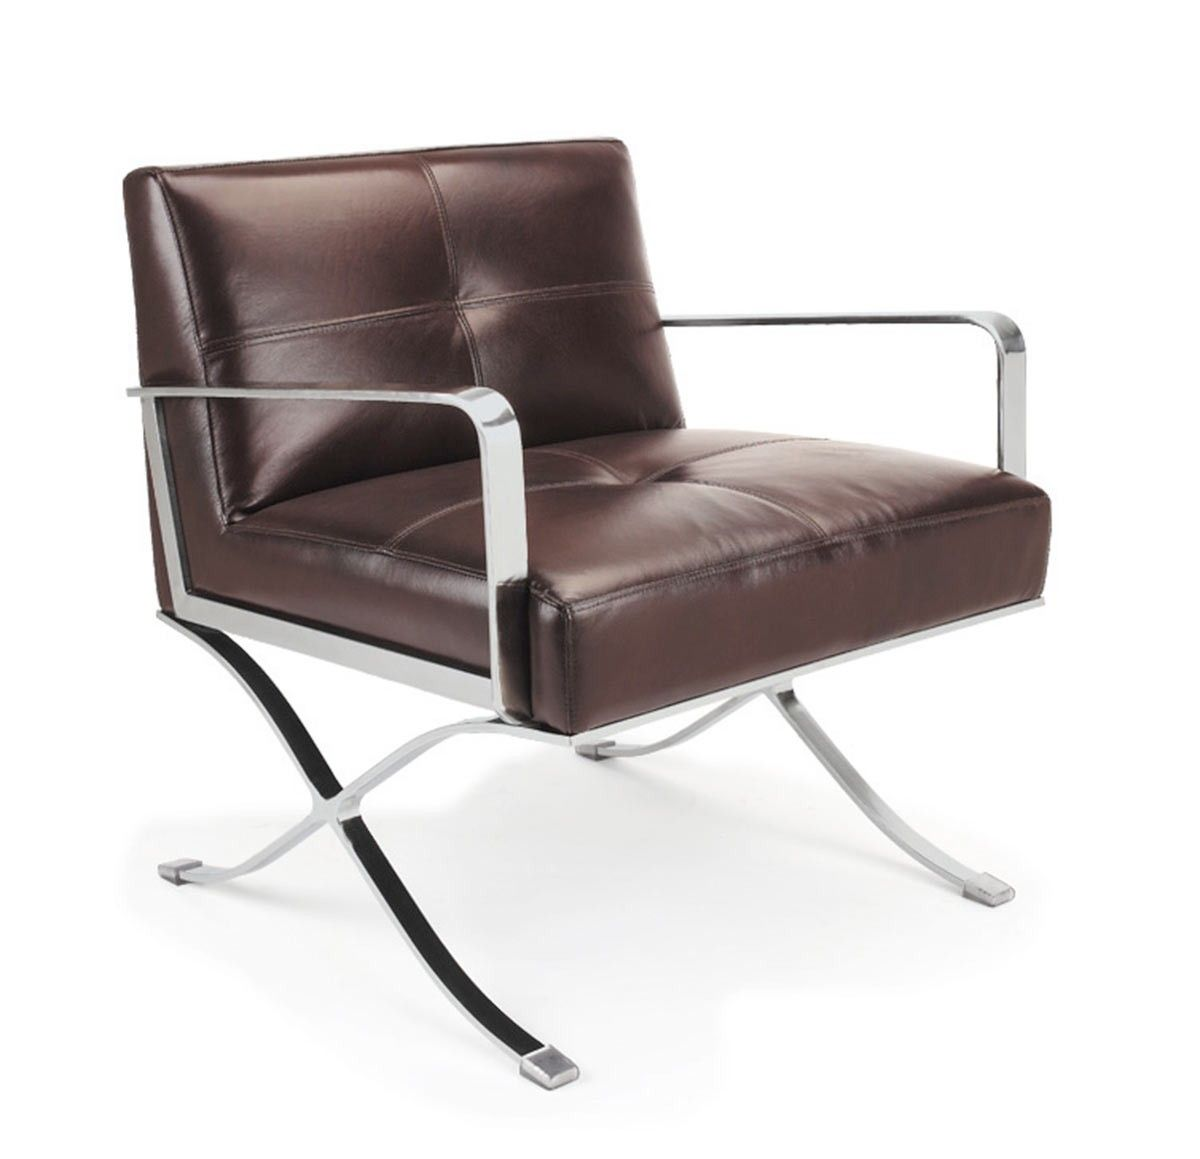 EC011 Modern Leather Lounge Chair Leather lounge Modern and